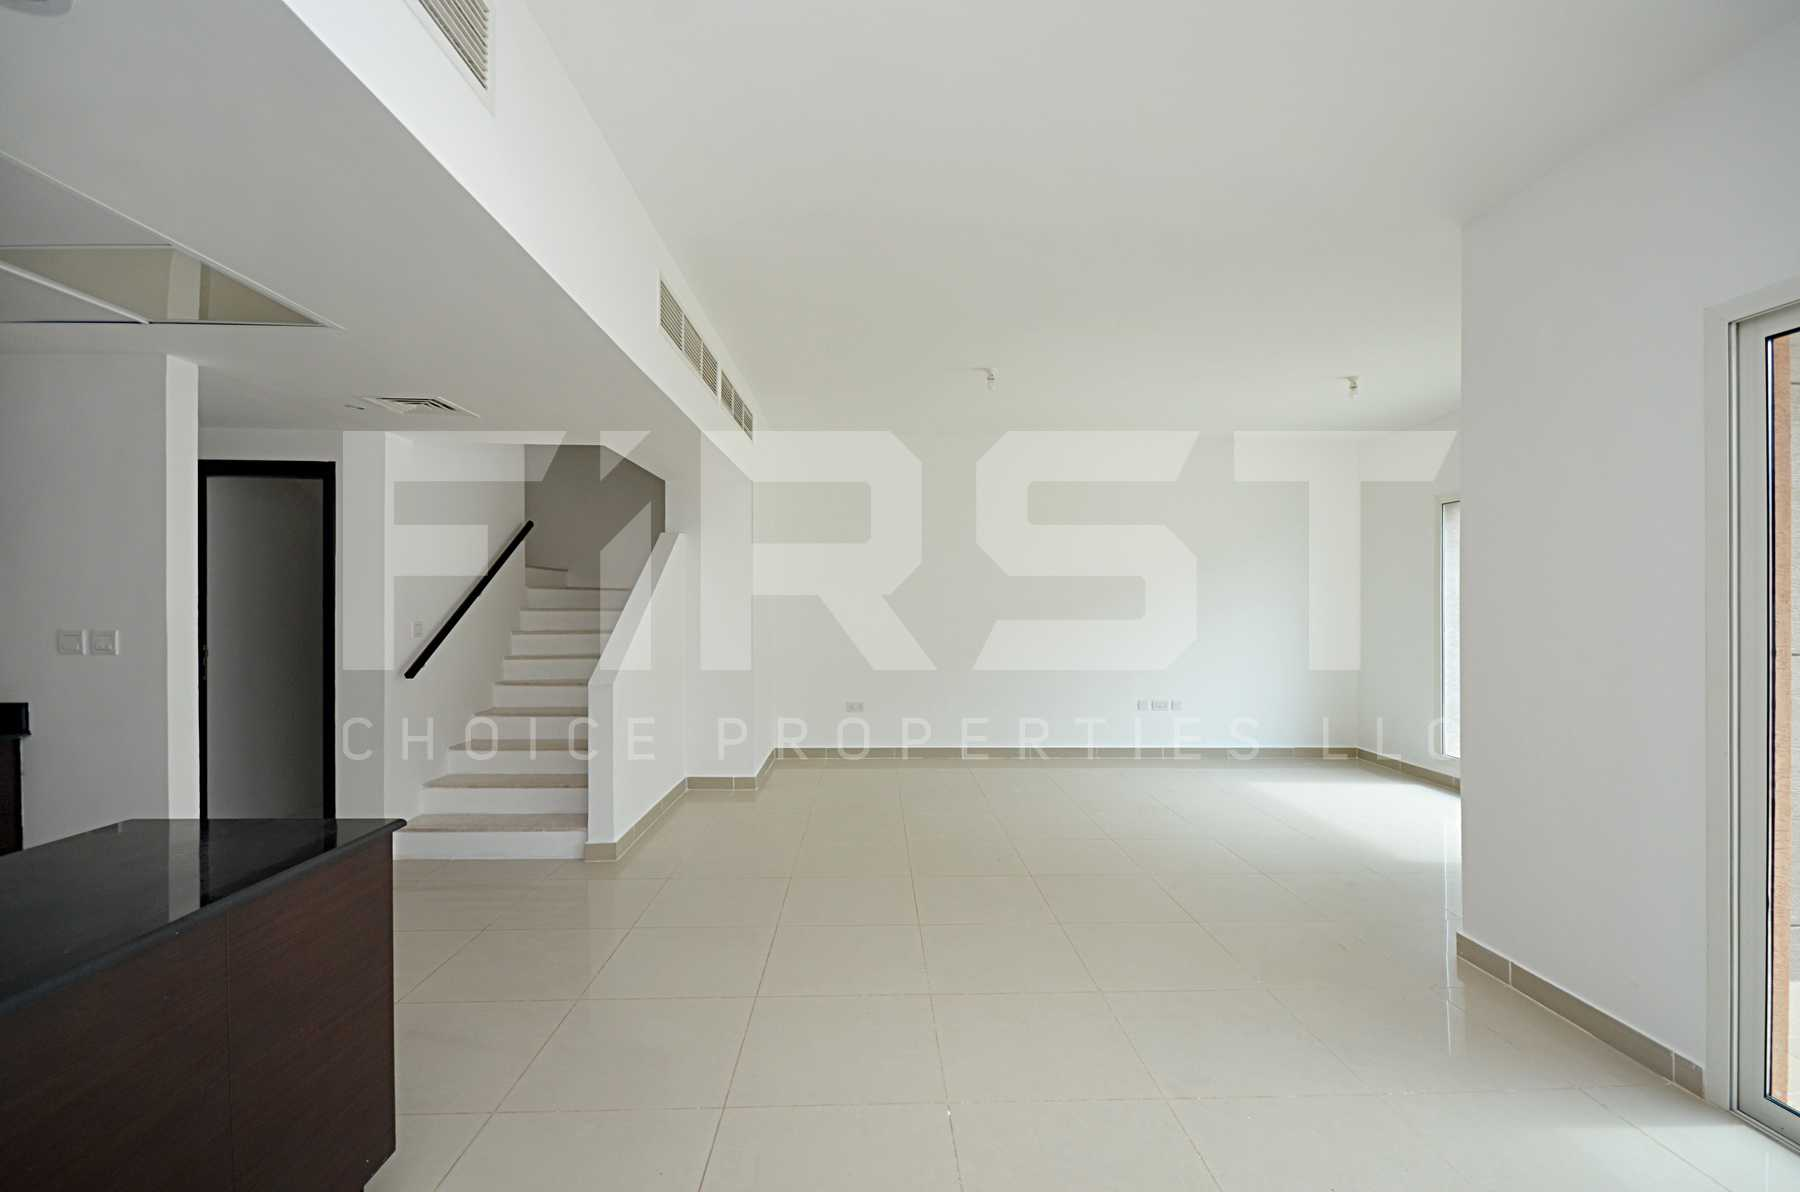 Internal Photo of 4 Bedroom Villa in Al Reef Villas Al Reef Abu Dhabi UAE 265.5 sq.m 2858 sq.ft (1).jpg